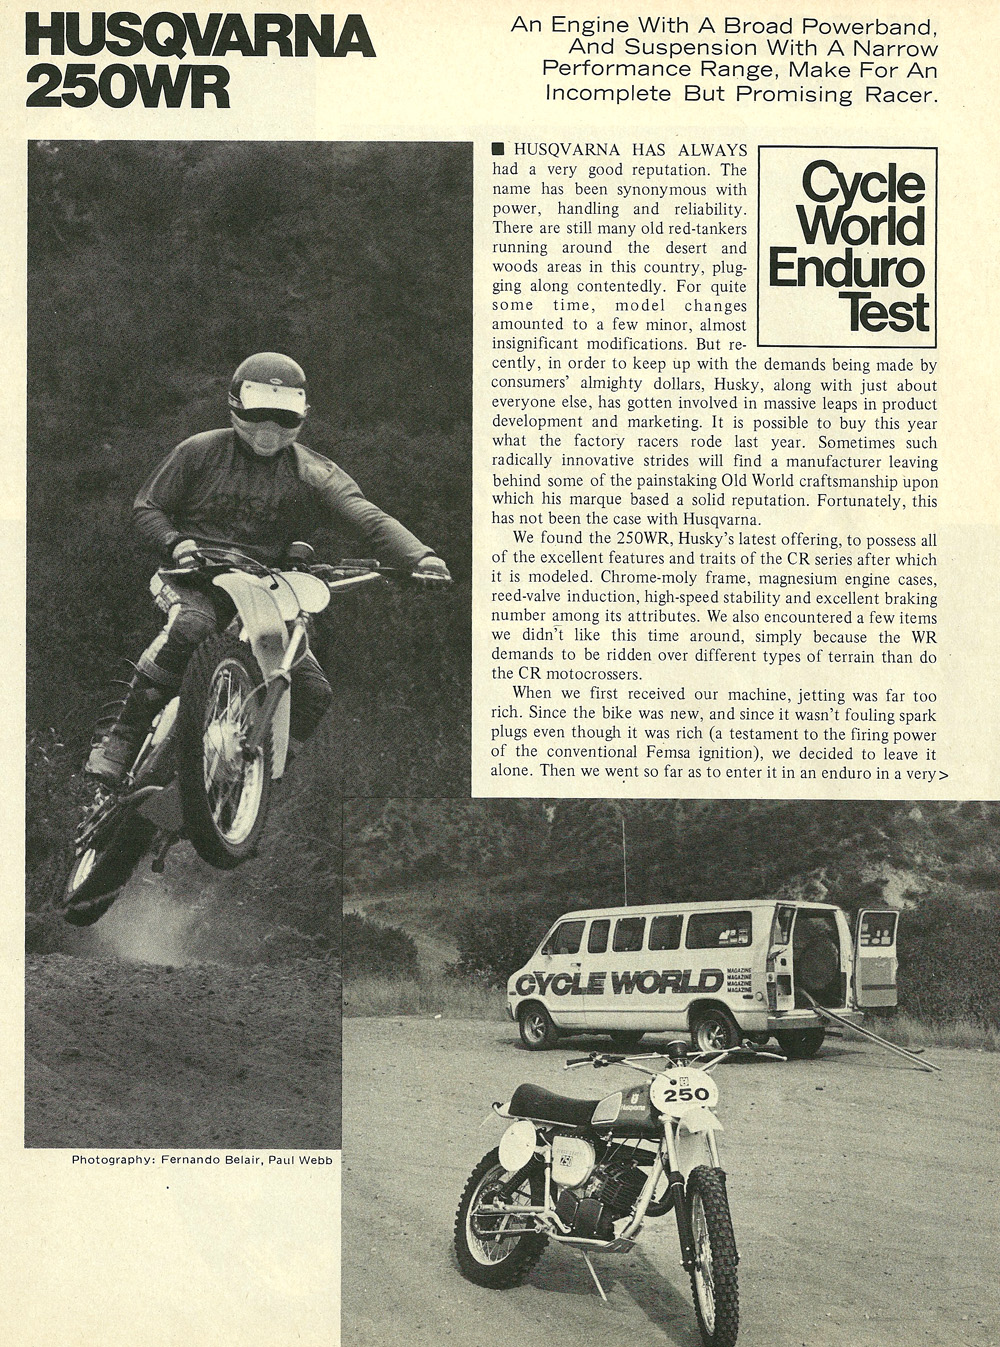 1976 Husqvarna 250WR road test 01.jpg